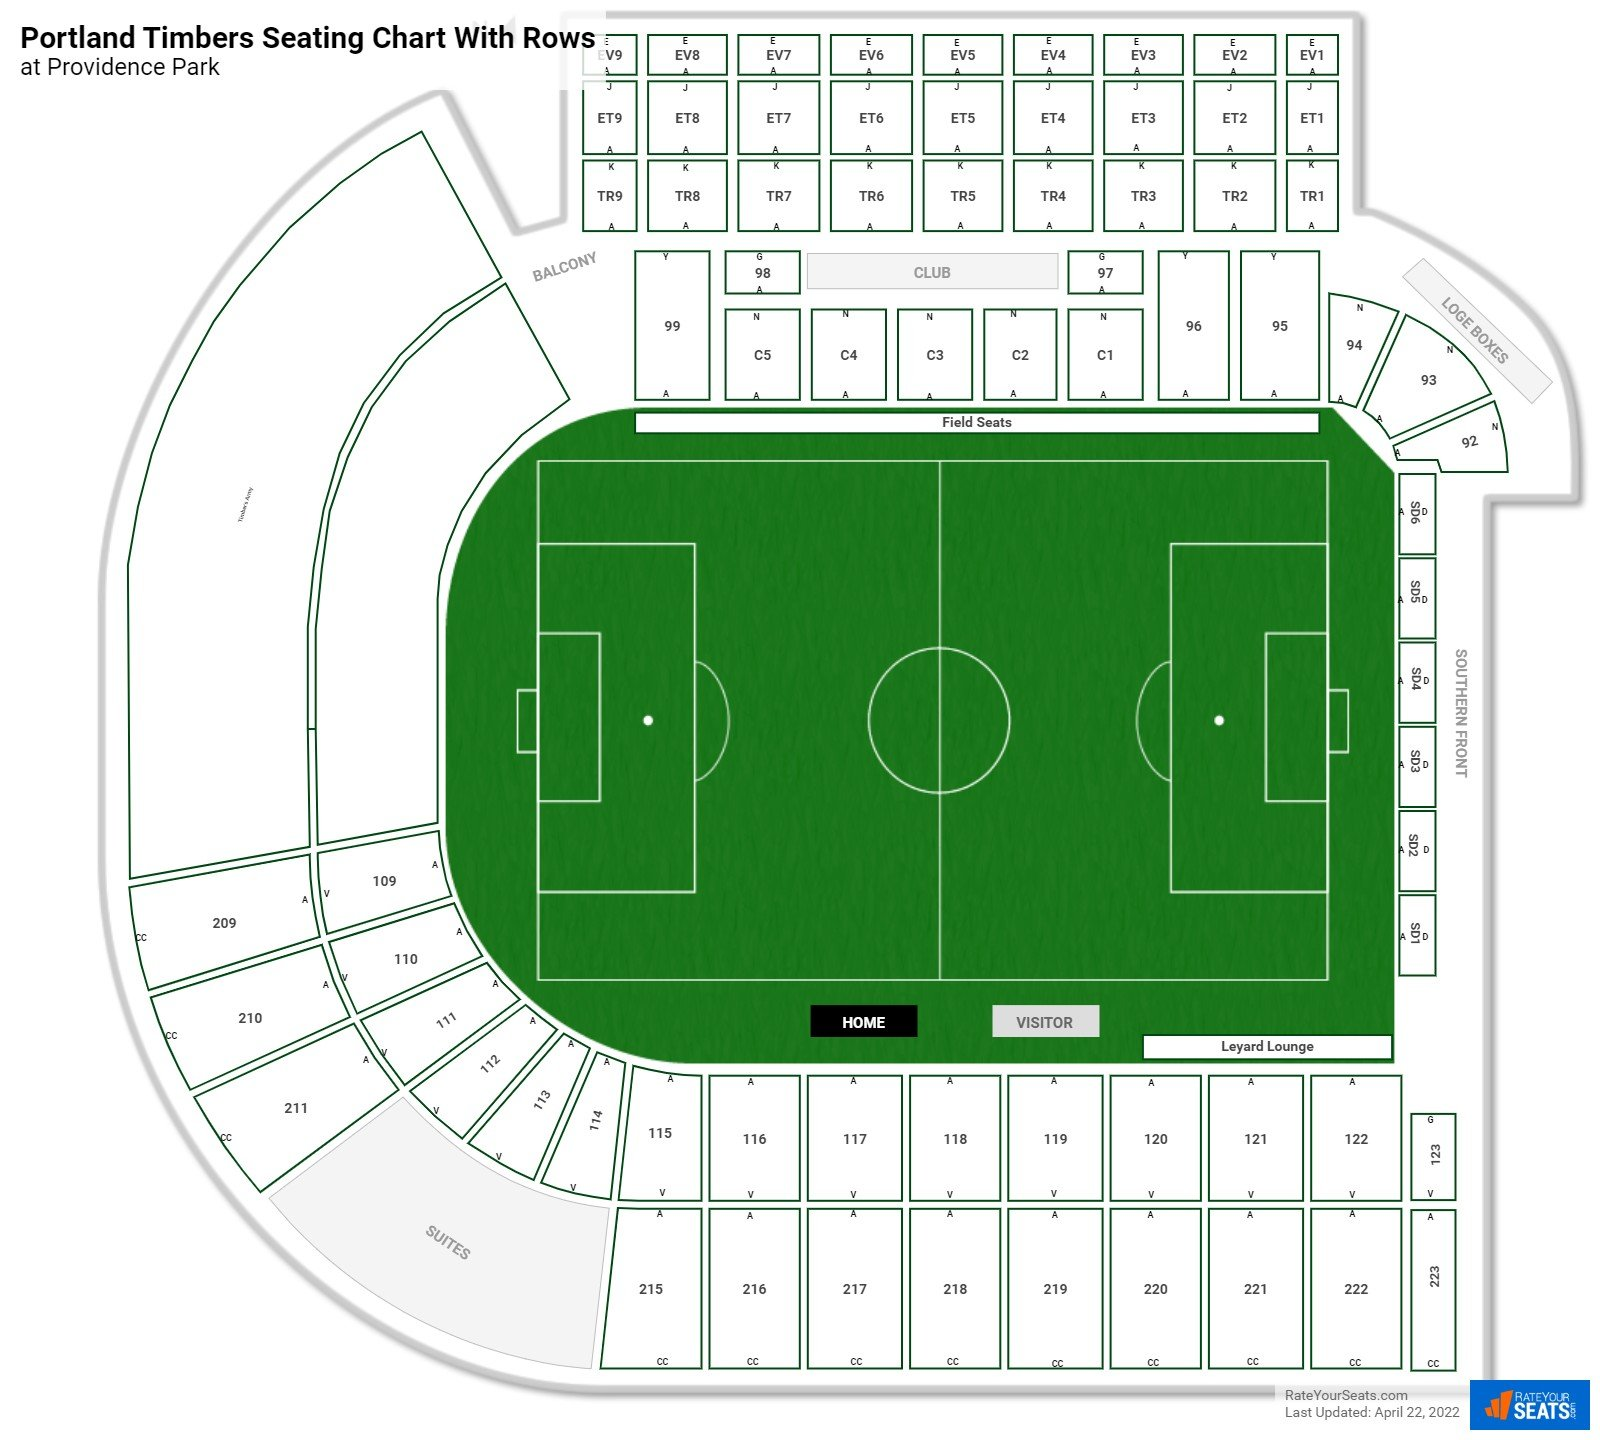 Providence Park seating chart with rows